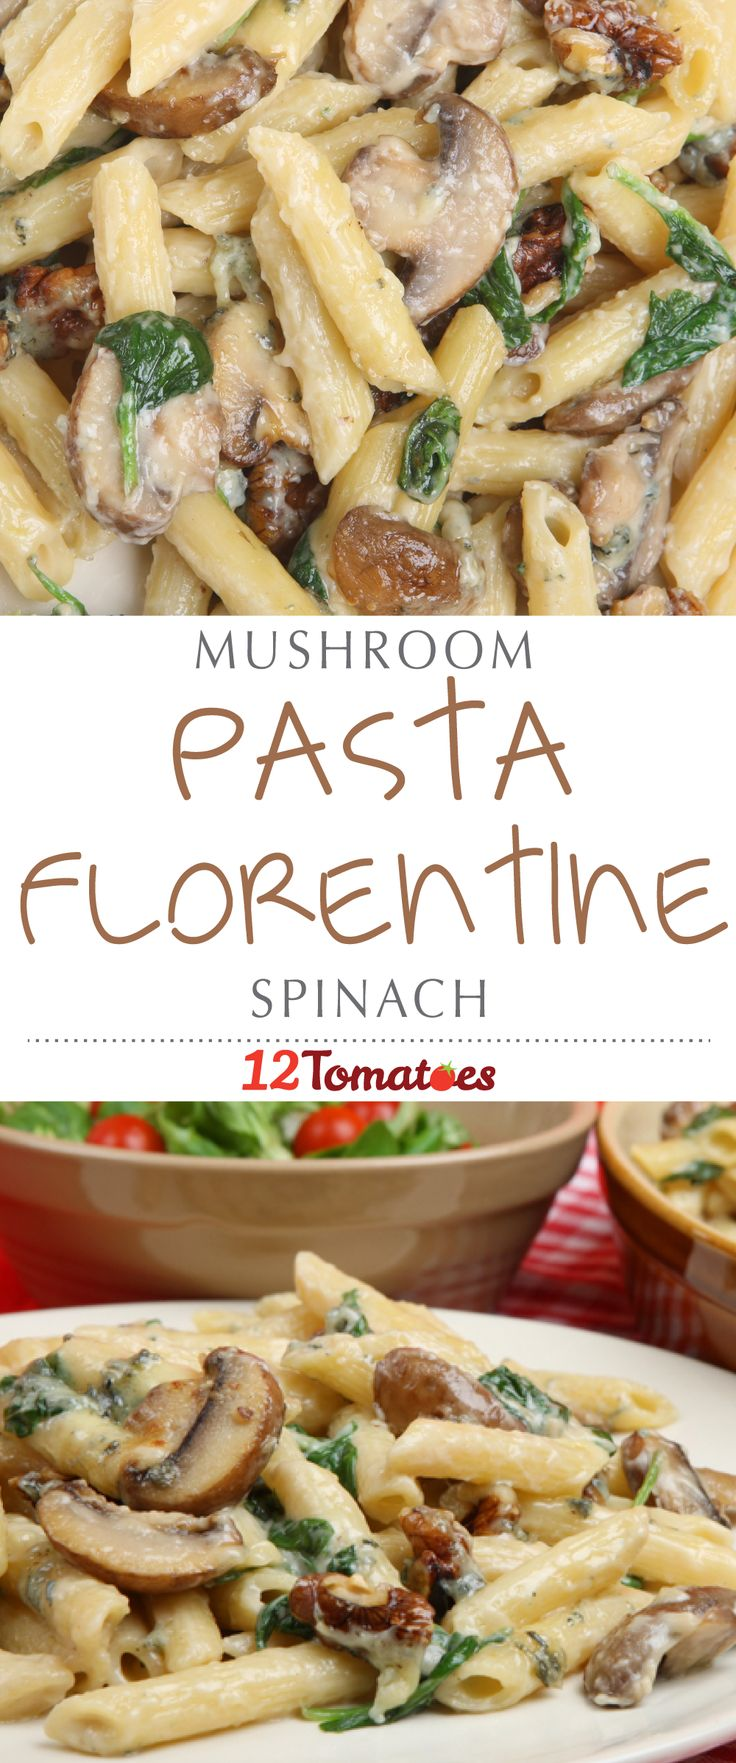 "Pasta Florentine is one of those tried-and-true recipes that always tastes good and is easy to make: the ""Florentine"" element being the creamy mushroom and spinach sauce that perfectly coats the pasta. (Chicken or salmon Florentine are also tasty options, but require a little more effort in terms of preparation and attention.)"